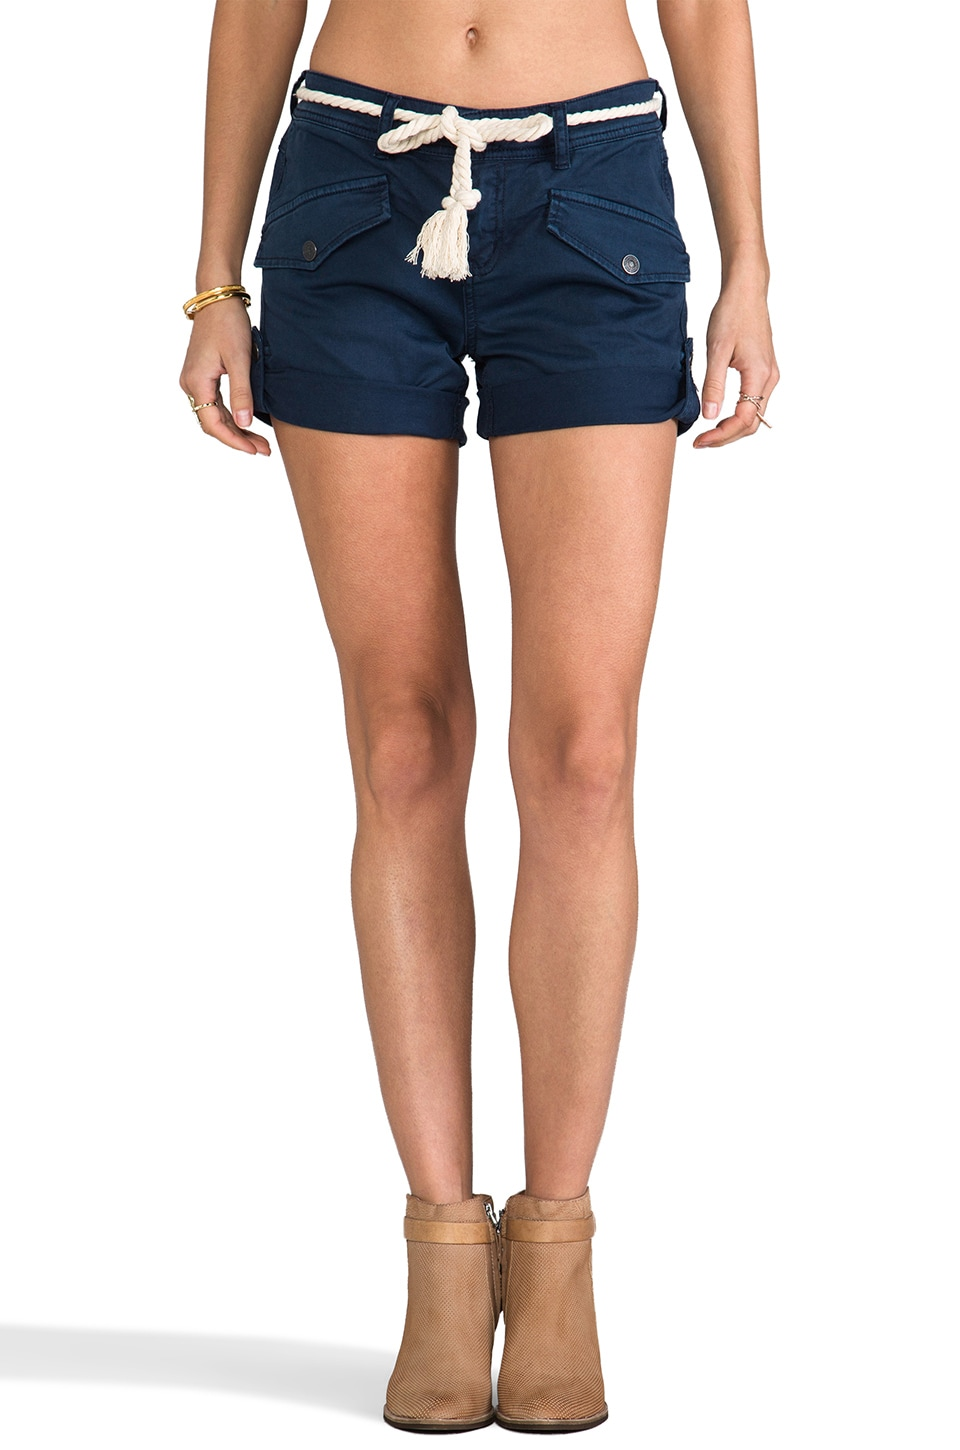 Free People Nautical Cuffed Short in Navy